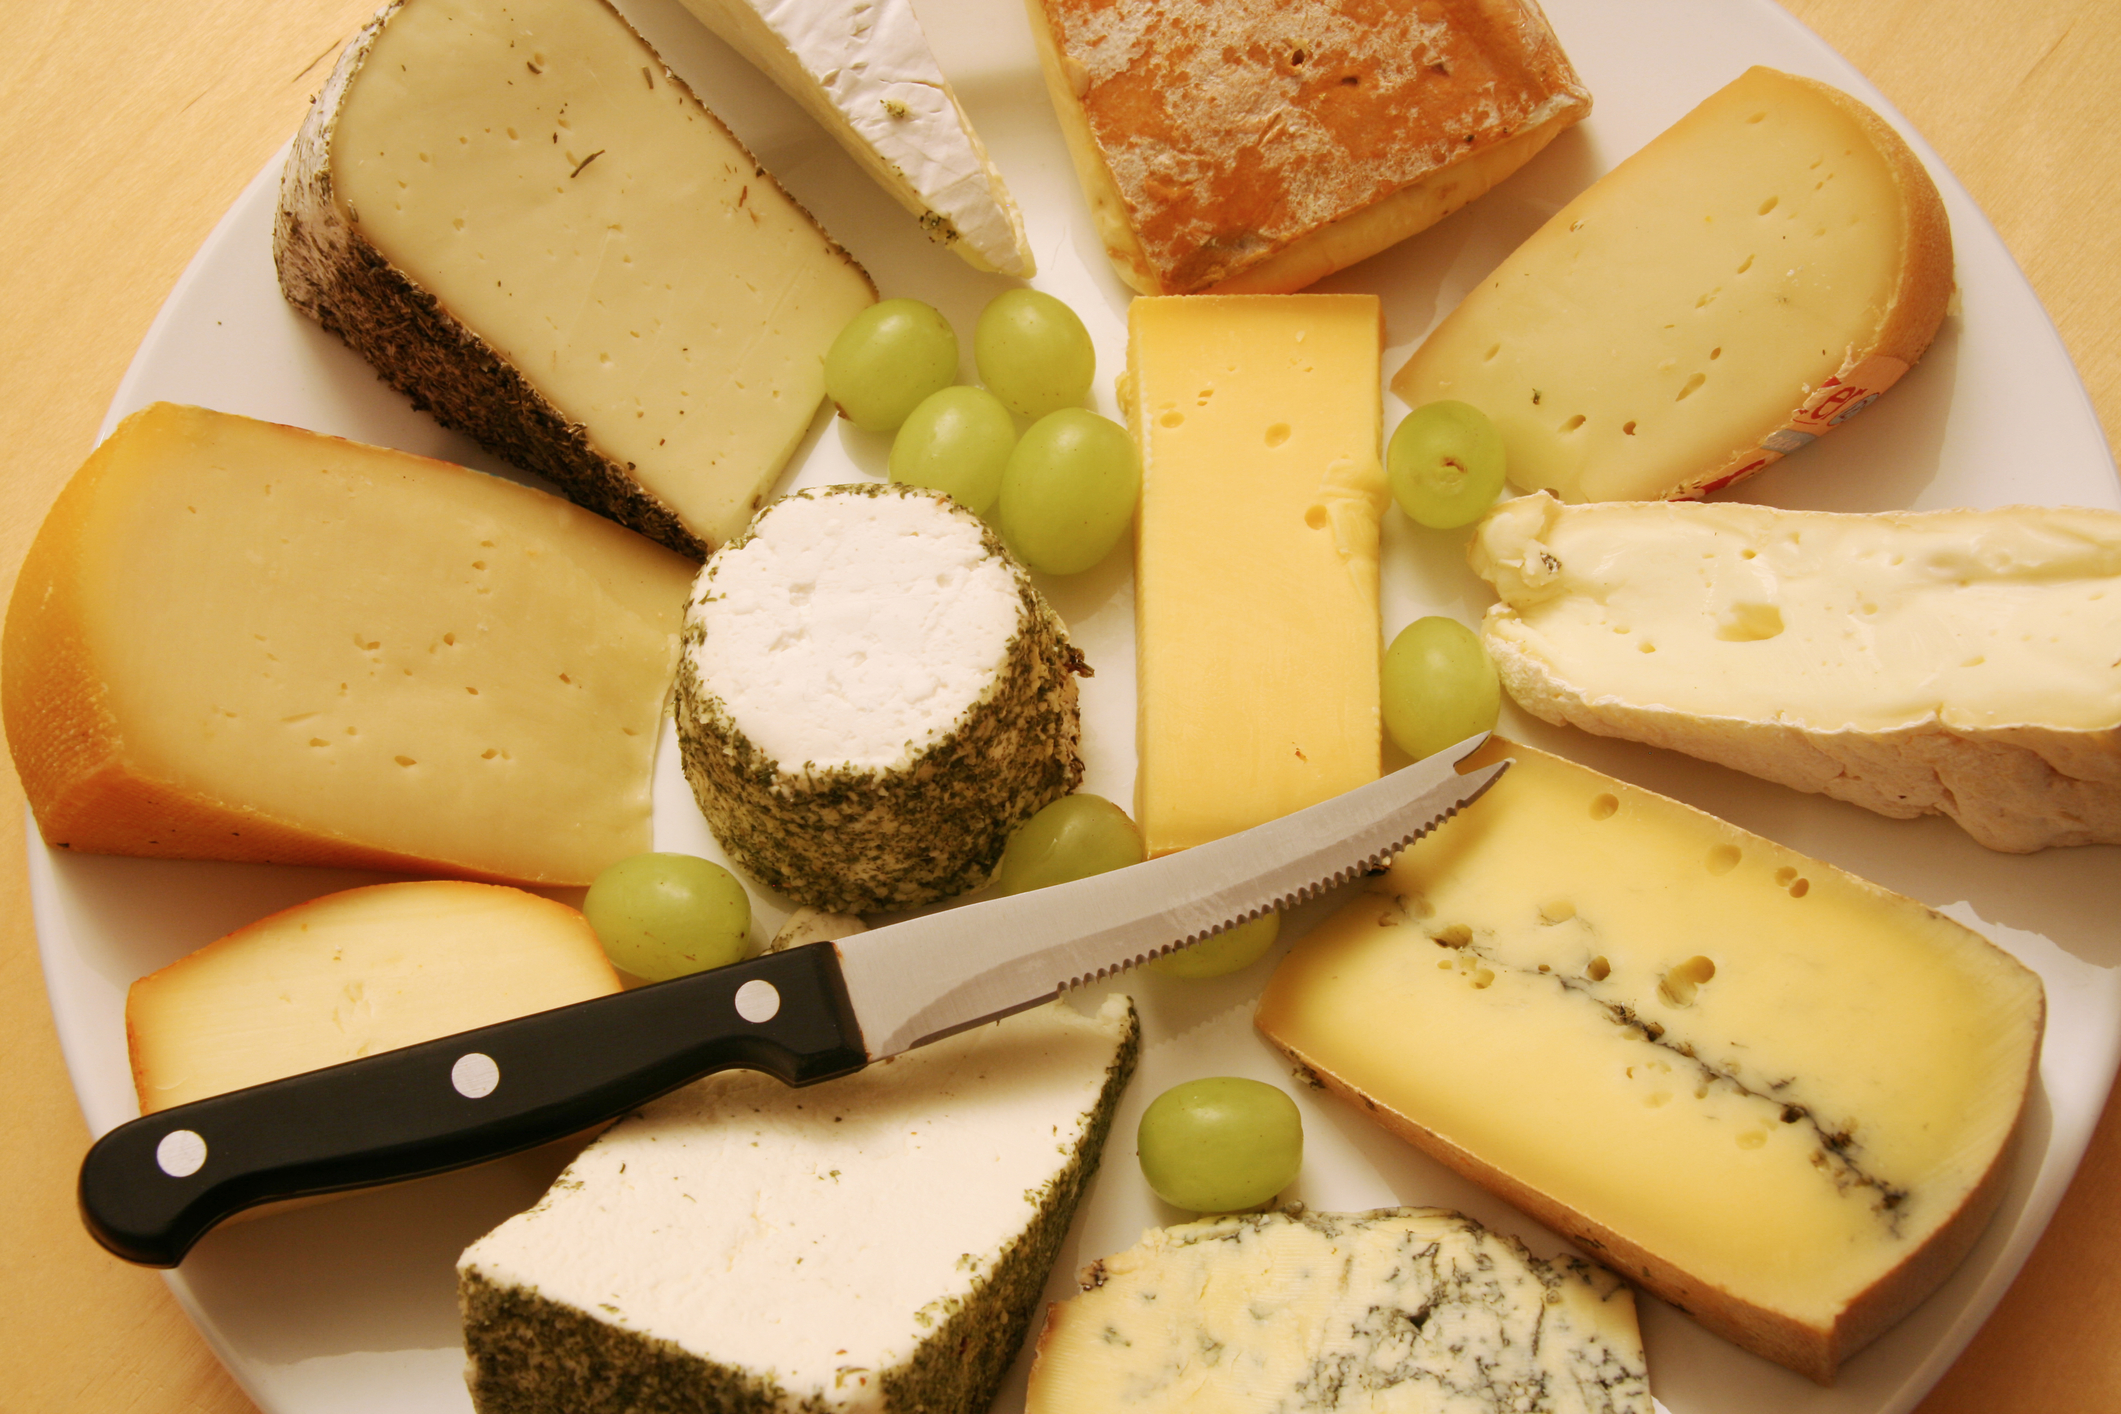 Cheese could help you live longer